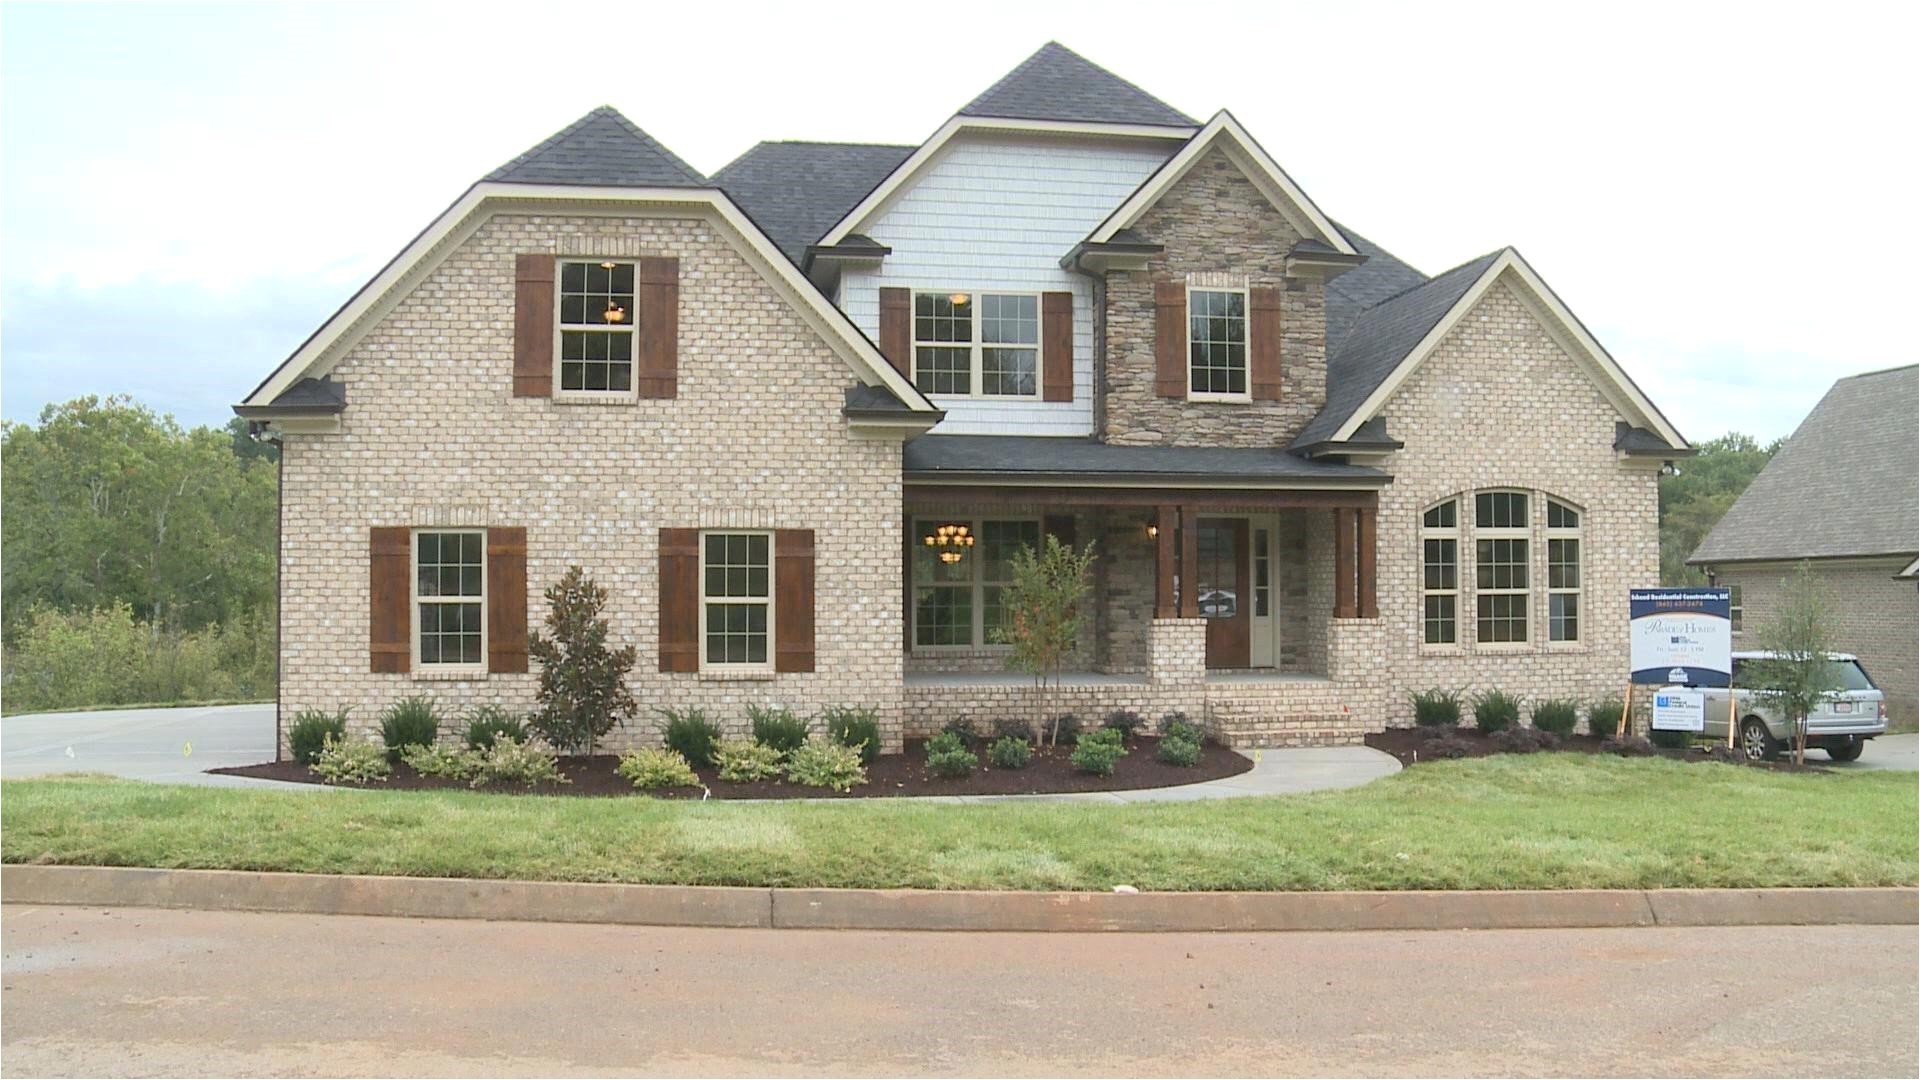 knoxville parade of homes parade of homes knoxville parade of homes 2017